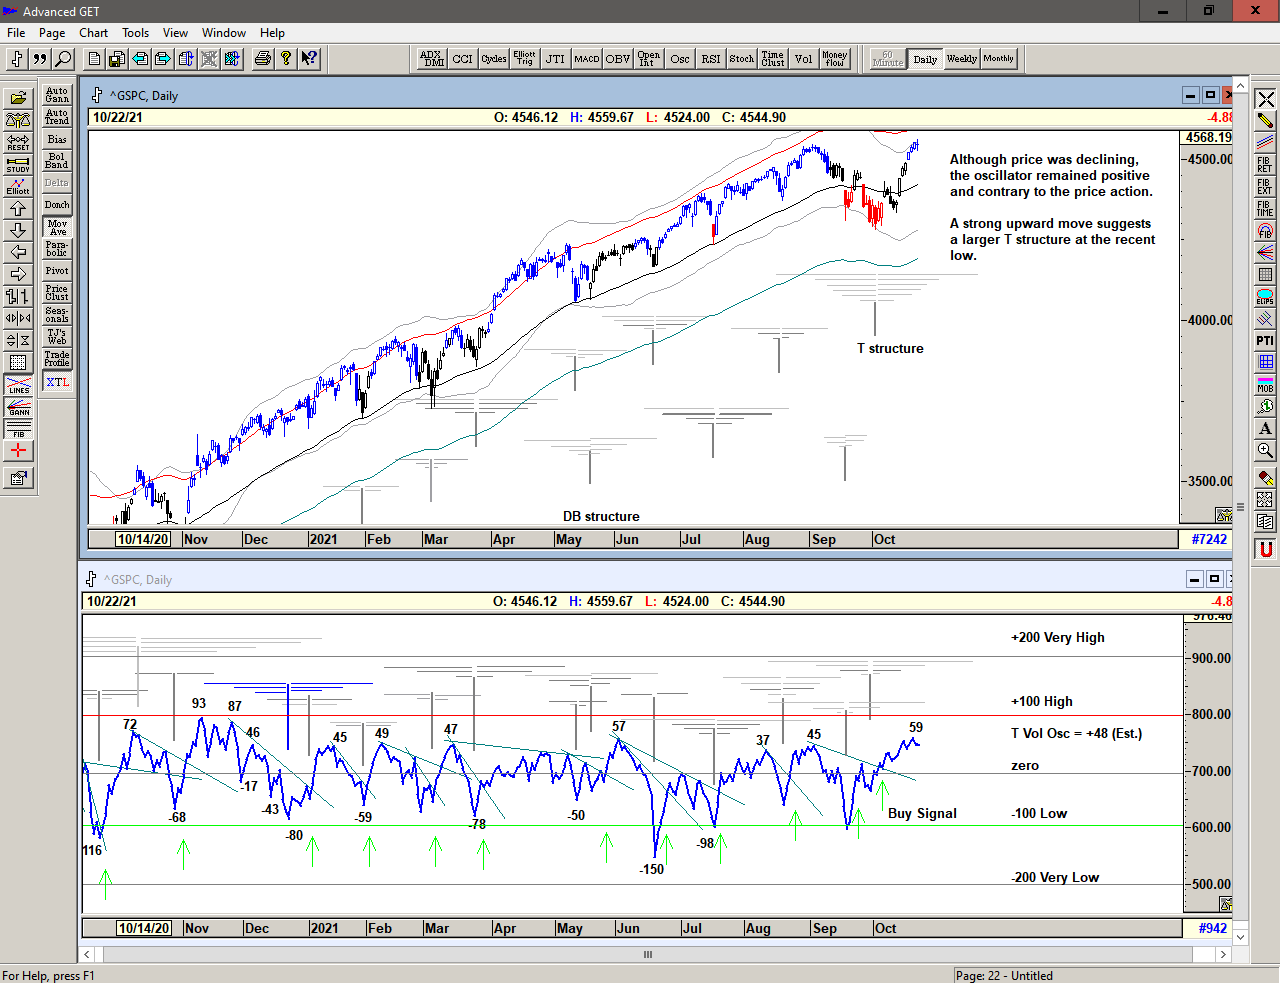 Chart of S&P 500 with T volume oscillator for 25 October 2021